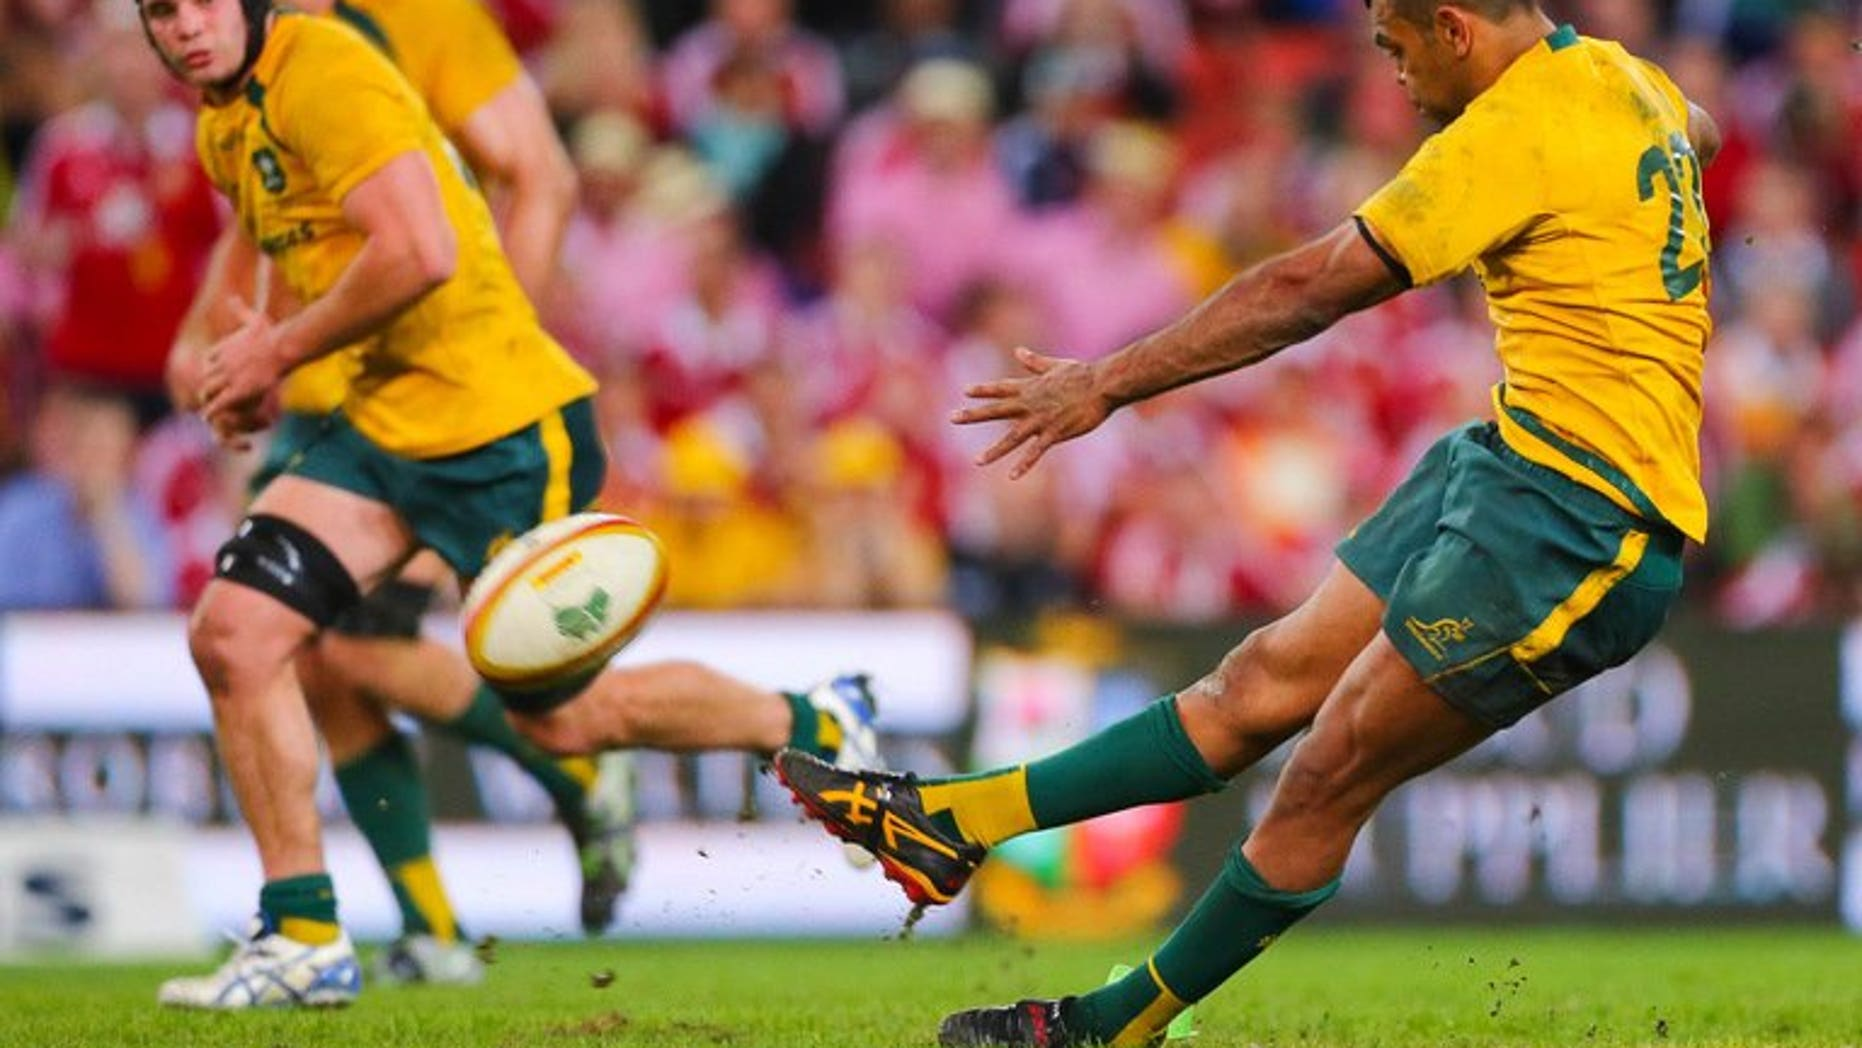 Australia's Kurtley Beale slips as he attempts a winning penalty against the British and Irish Lions on June 22, 2013. Lions coach Warren Gatland has taken a swipe at the battered Wallabies ahead of this week's potentially decisive Melbourne Test by hinting a lack of professionalism by Beale cost Australia victory in Brisbane.